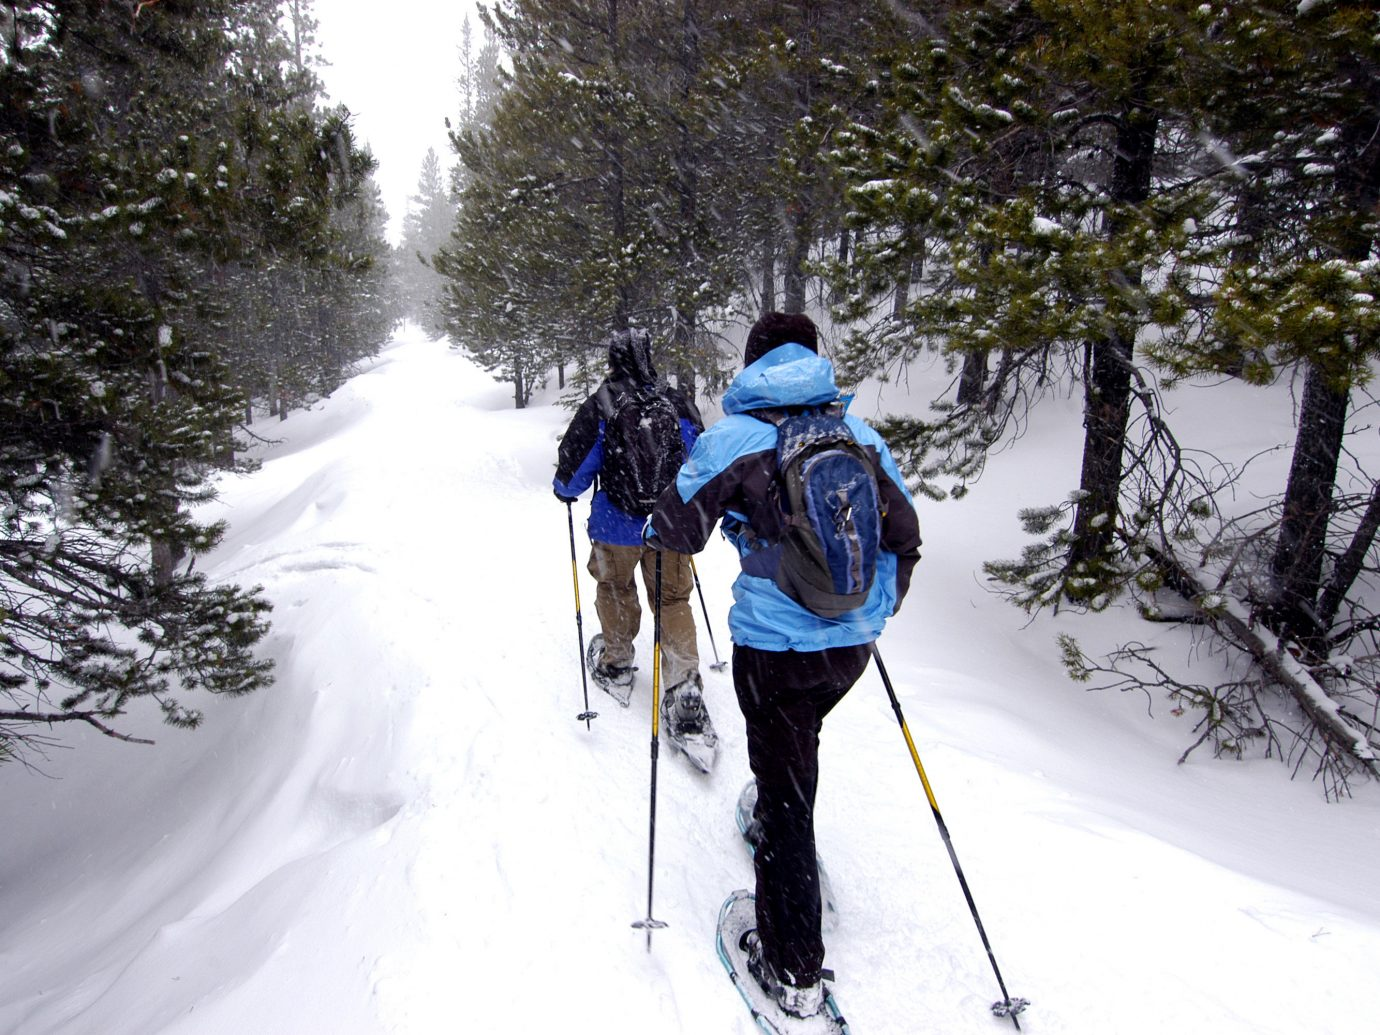 Jetsetter Guides outdoor tree snow skiing footwear cross Winter Country trail cross country skiing snowshoe path sports nordic skiing winter sport outdoor recreation Ski wood recreation ski equipment wooded ski touring Forest ski slope